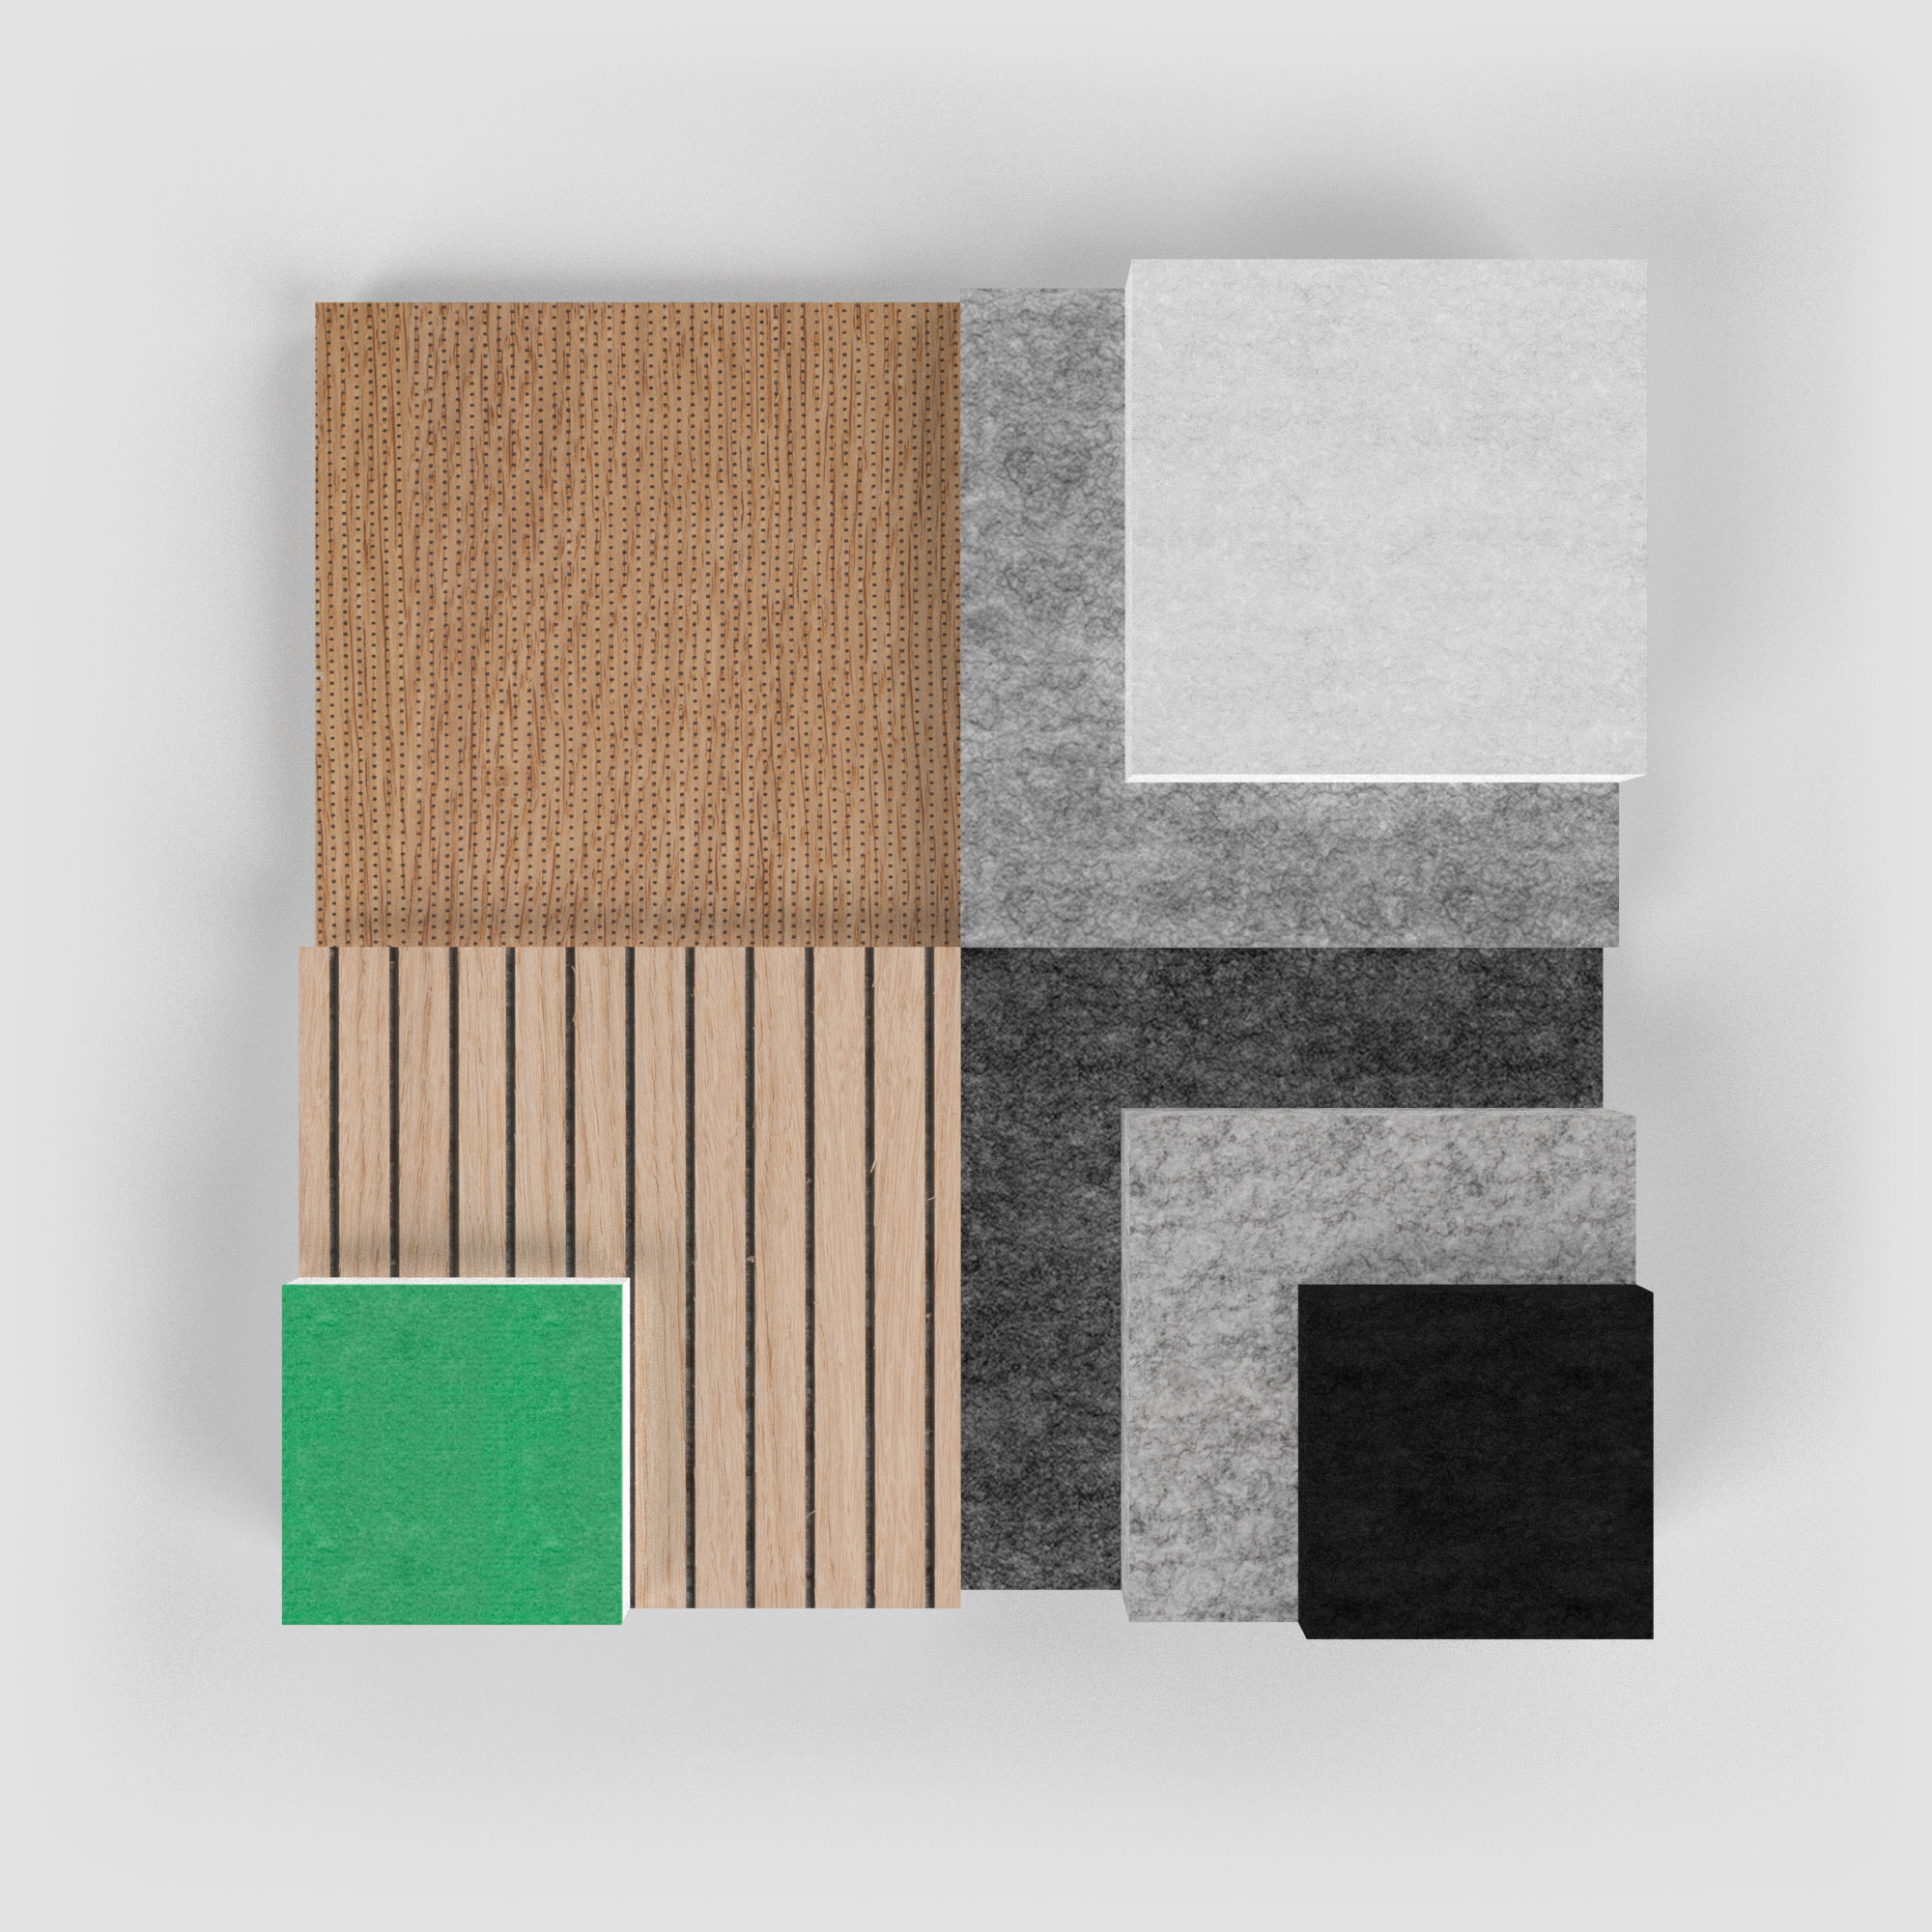 Samples of the different finishing options of PETAC ©